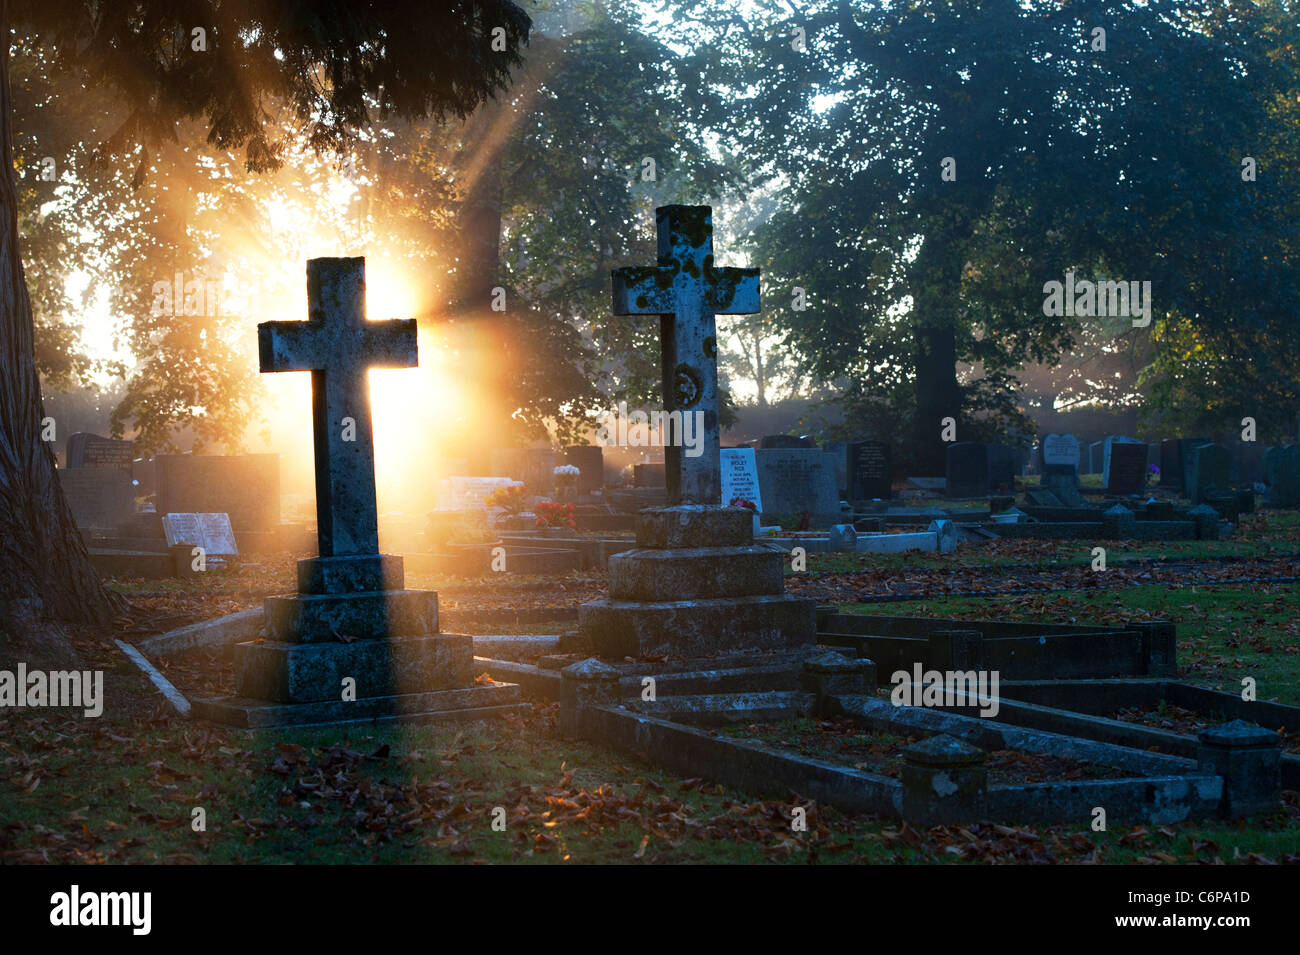 Cemetery Cross headstones lit up in the early morning sunlight through mist. England - Stock Image